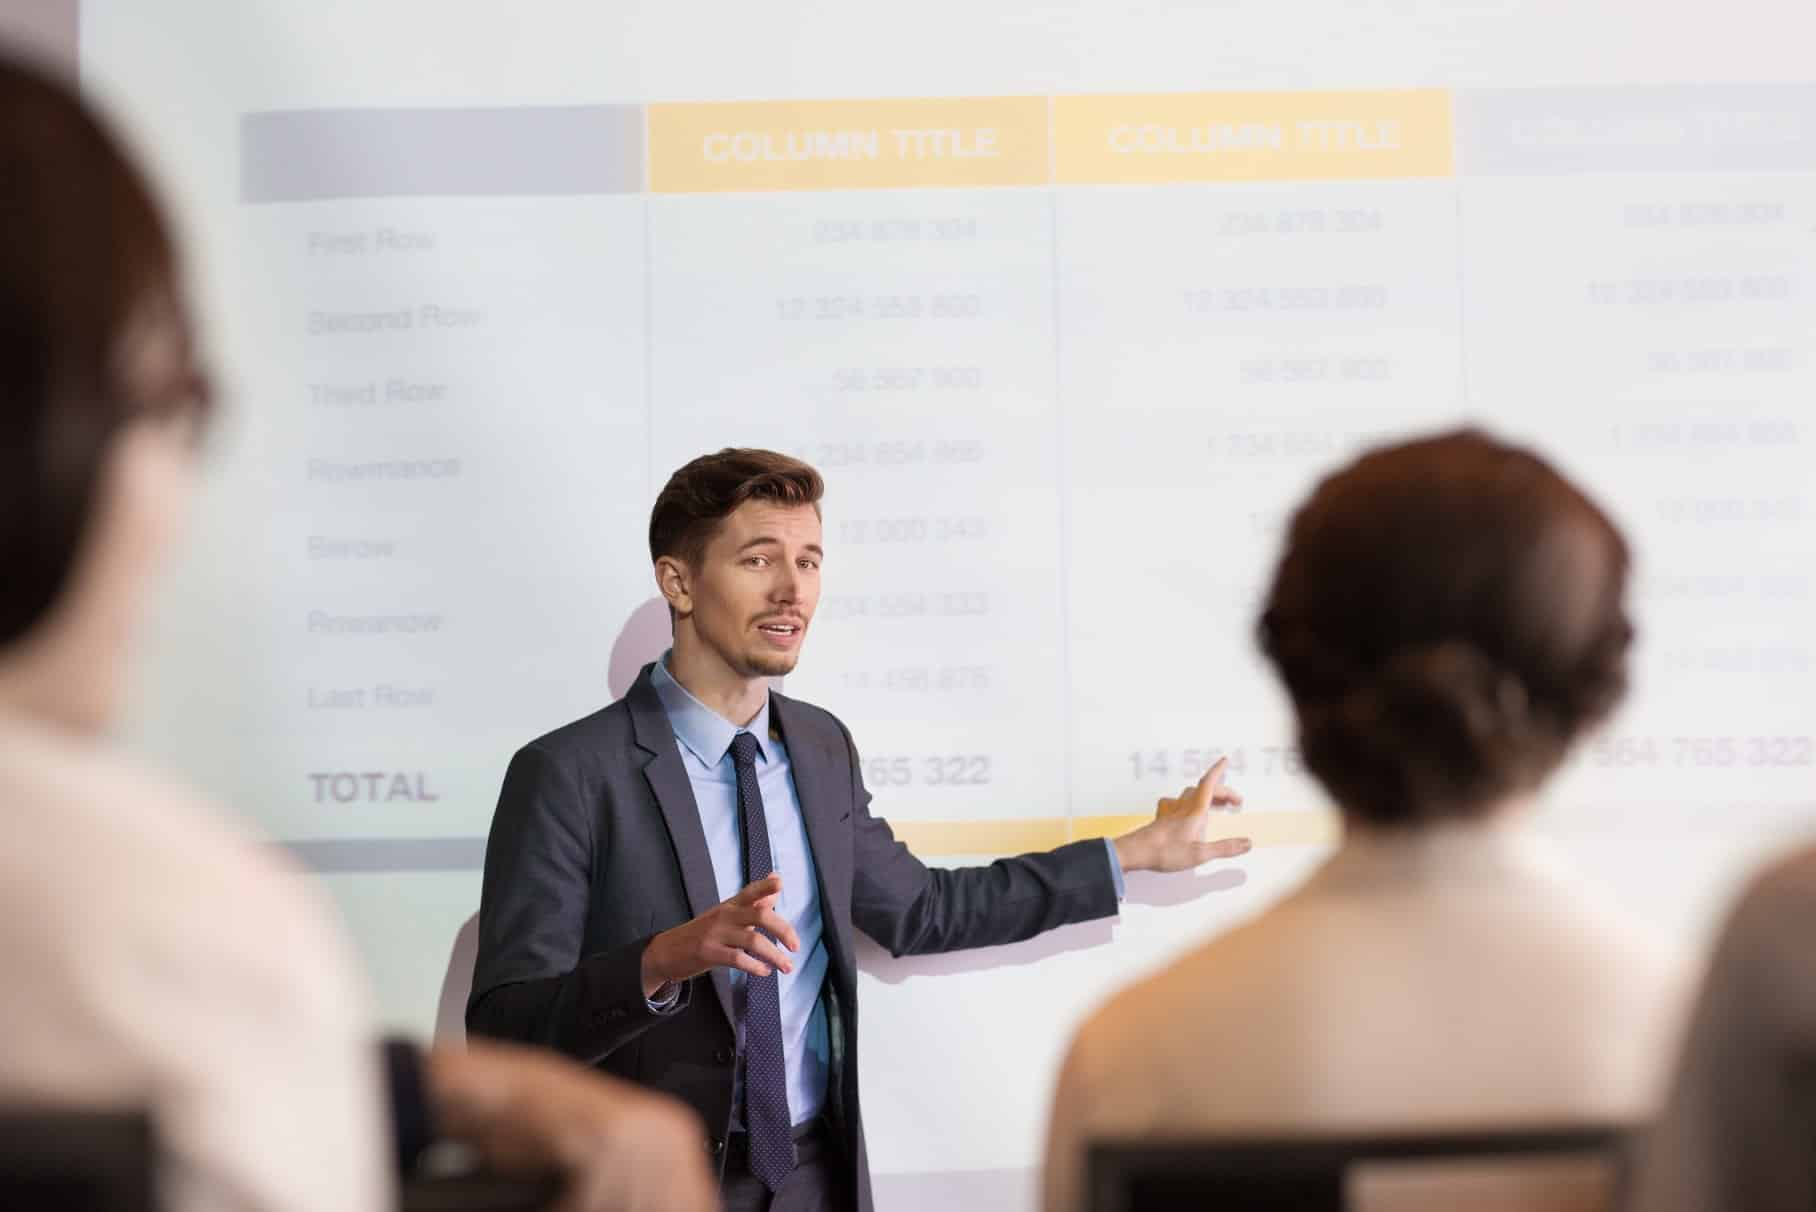 How to make an effective sales presentation